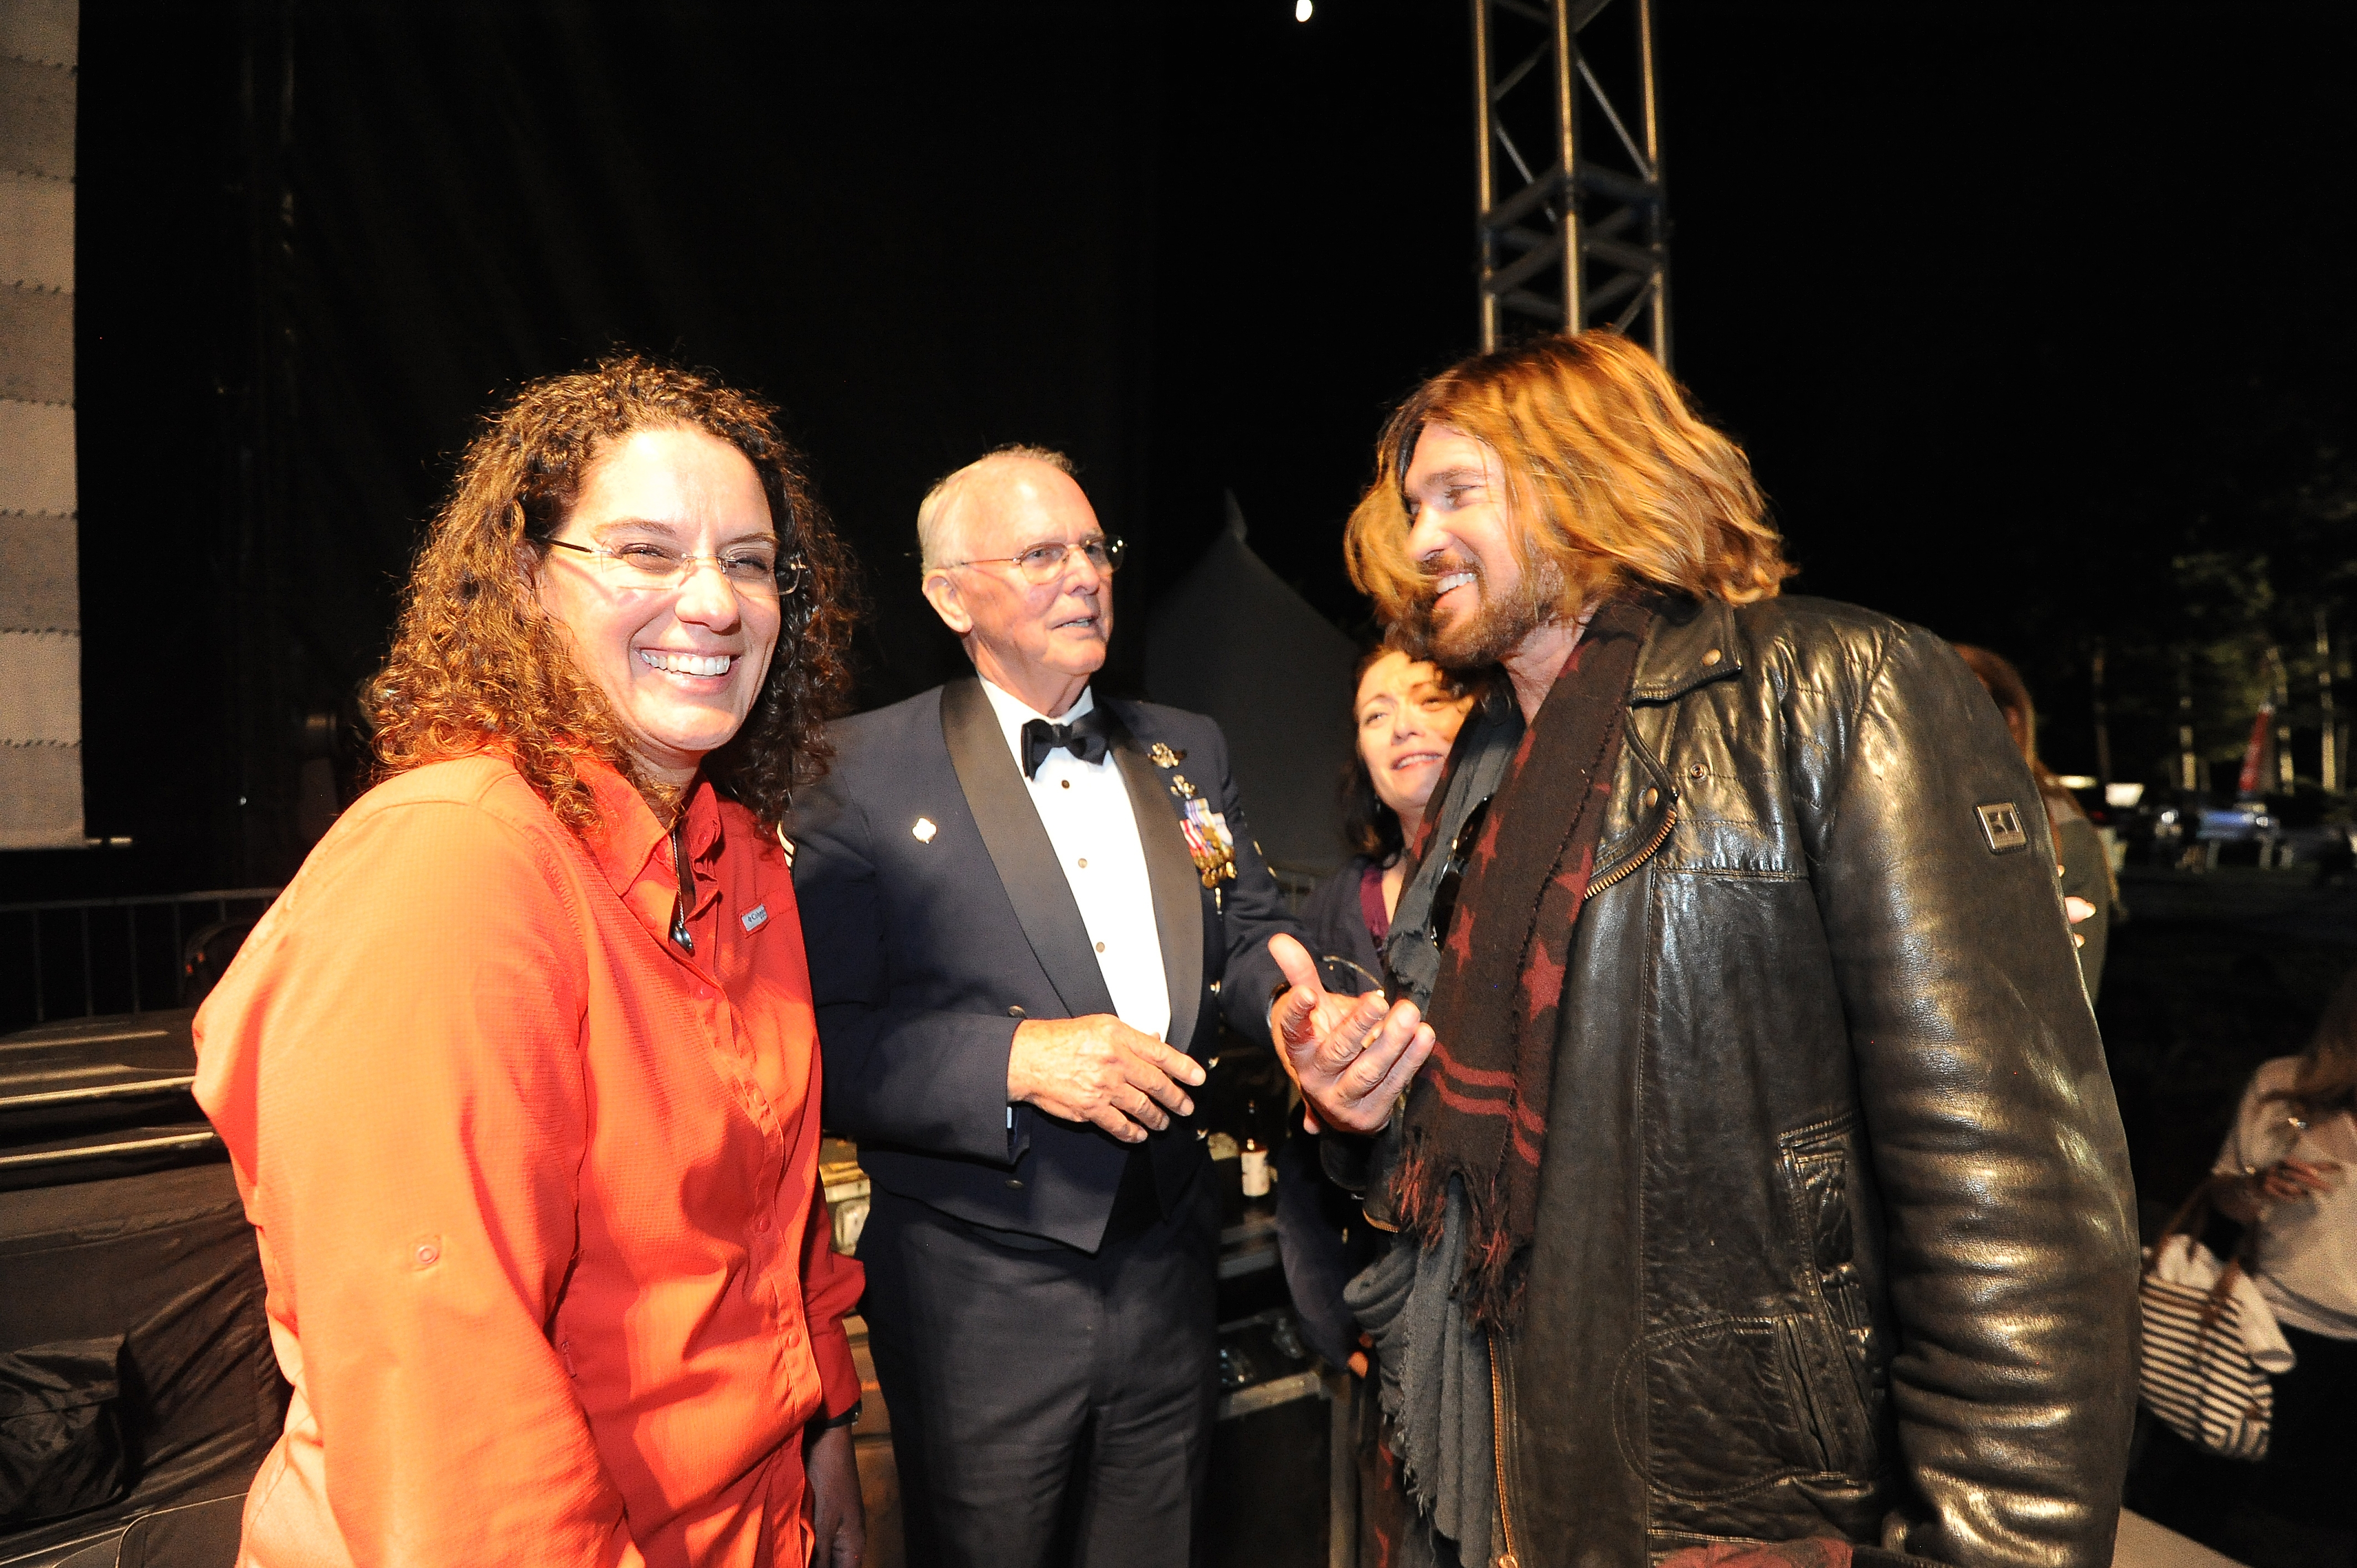 Billy Ray Cyrus, right, chats with Sharon Landsberry, left, and other guests at a concert in Lake Tahoe on Saturday. He presented a plaque and a check to Landsberry.